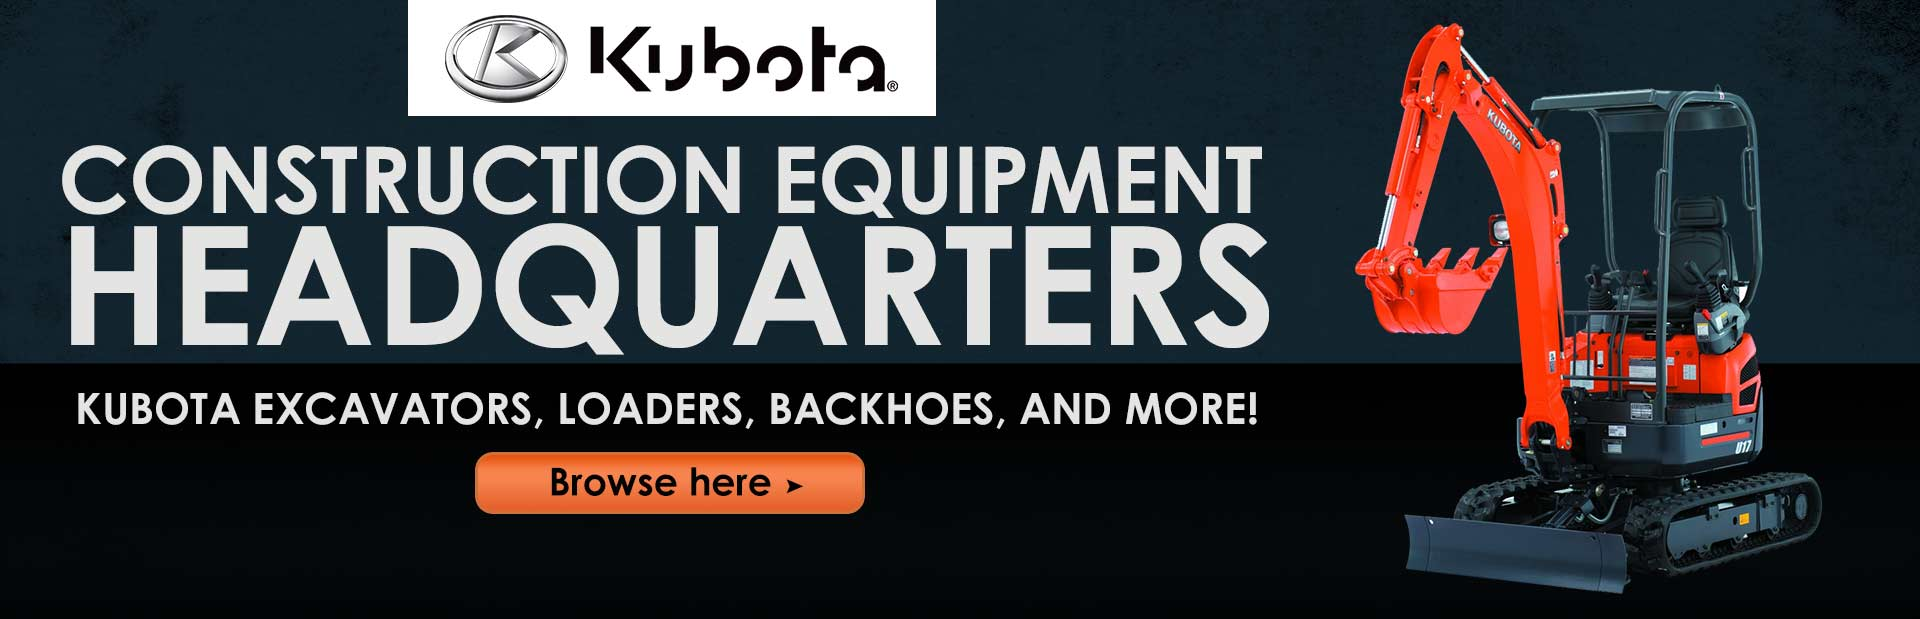 We are your construction equipment headquarters! Click here to browse Kubota excavators, loaders, backhoes, and more.